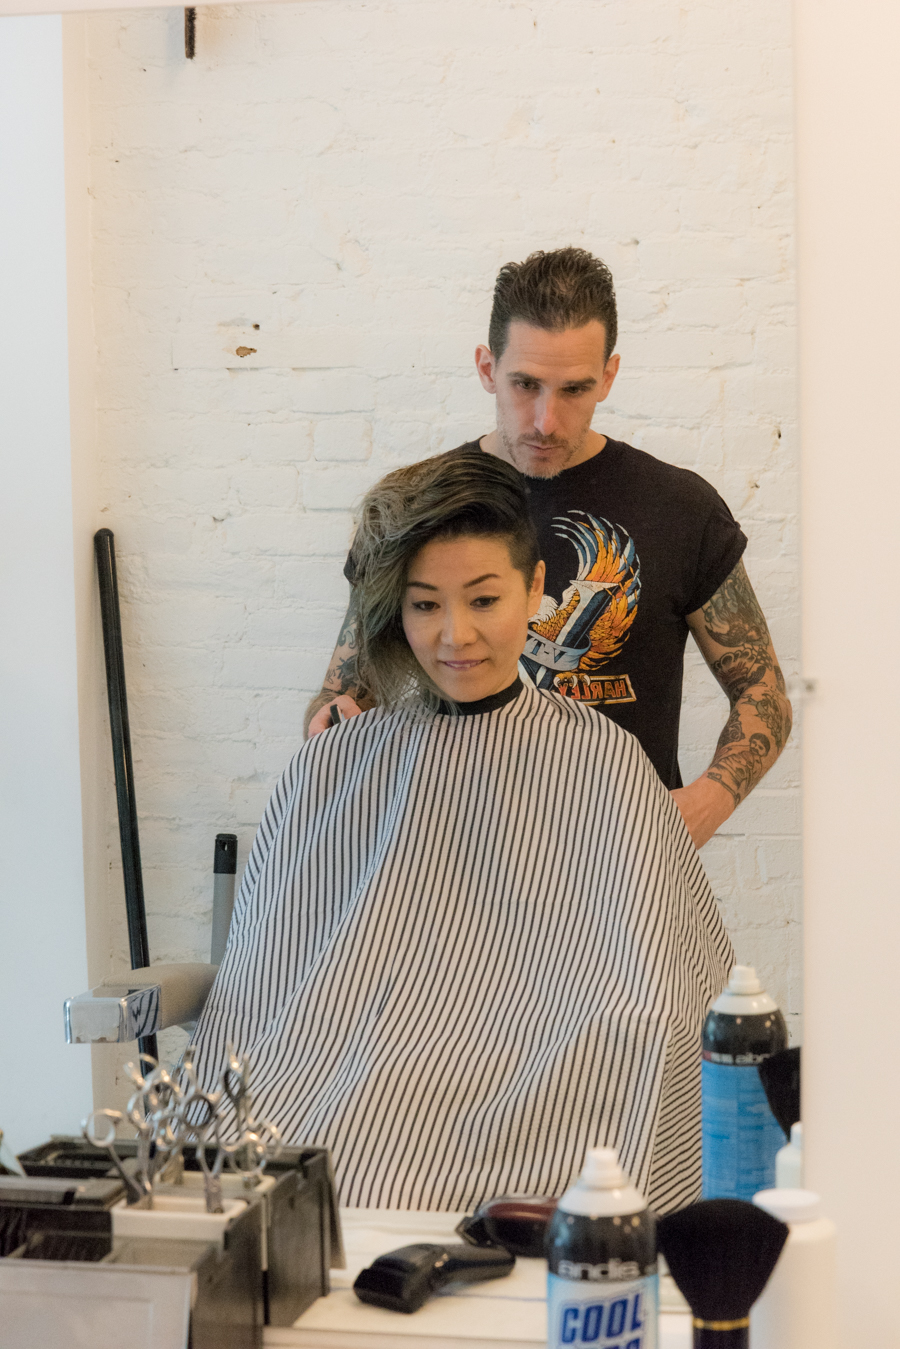 Cool Barber Shop In NY Mildred 大注目のカッコいいバーバーショップ In NY 7